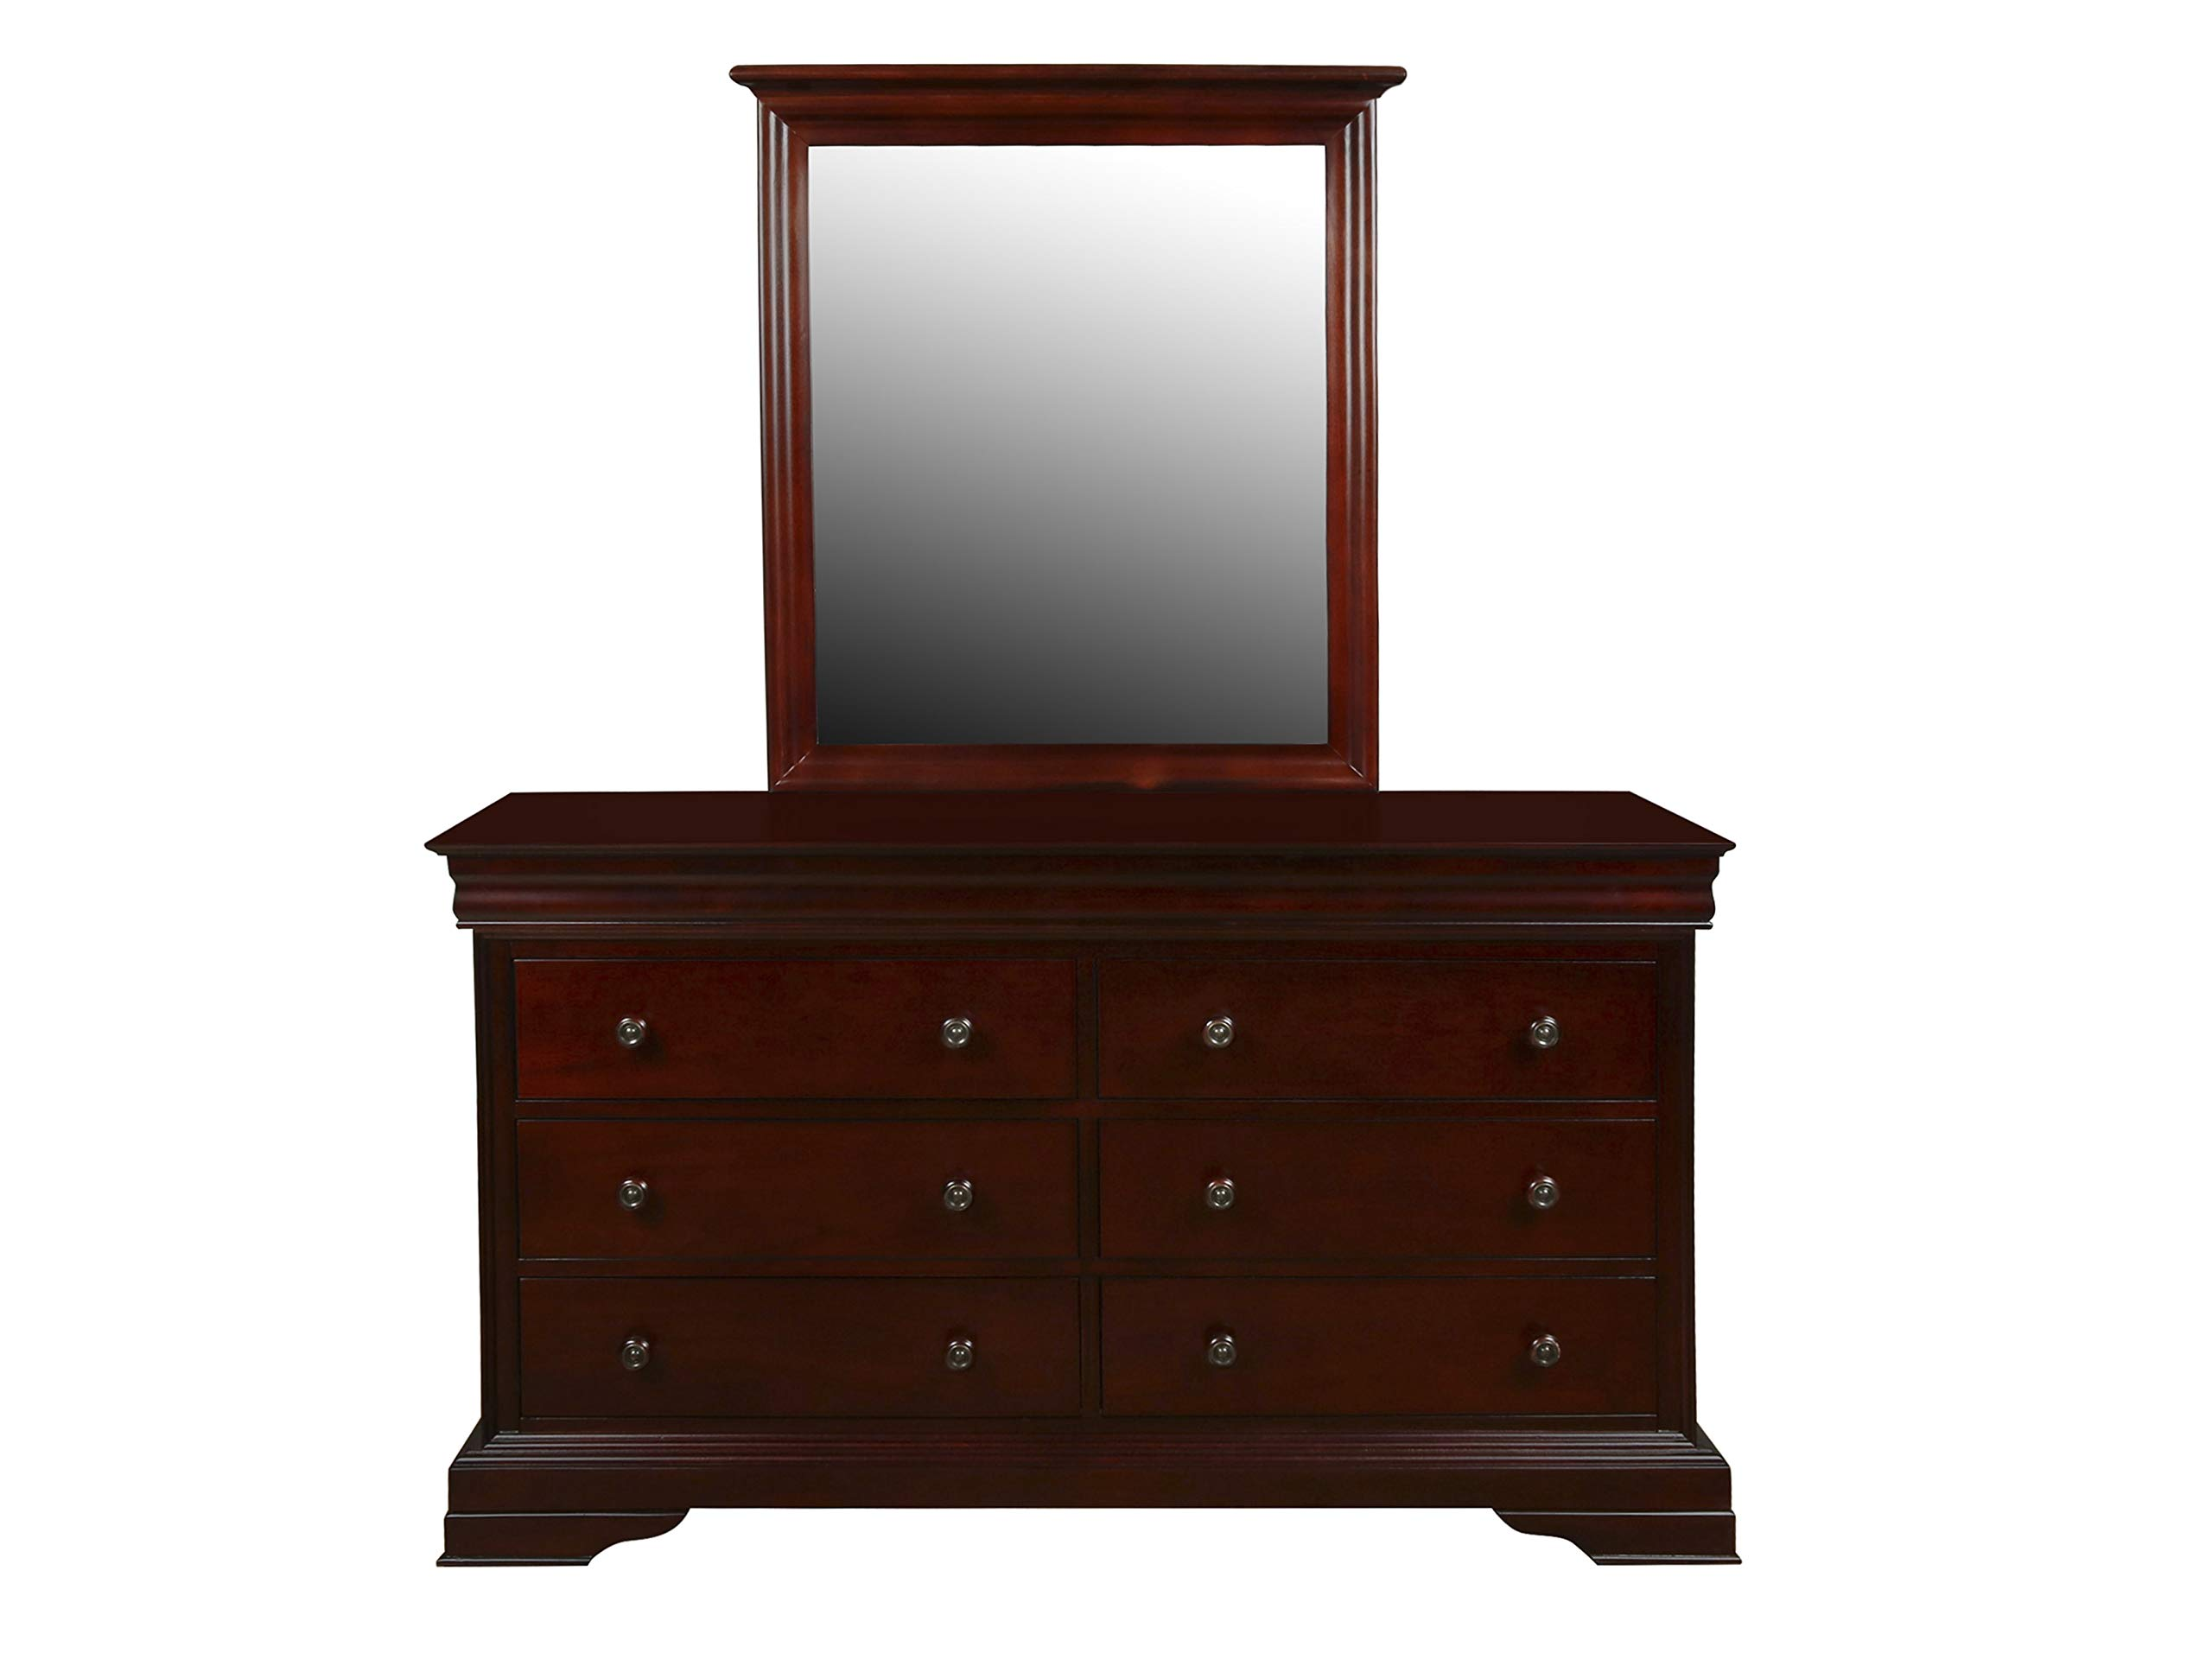 New Classic Furniture 1040-052 Versailles Youth Dresser, Bordeaux